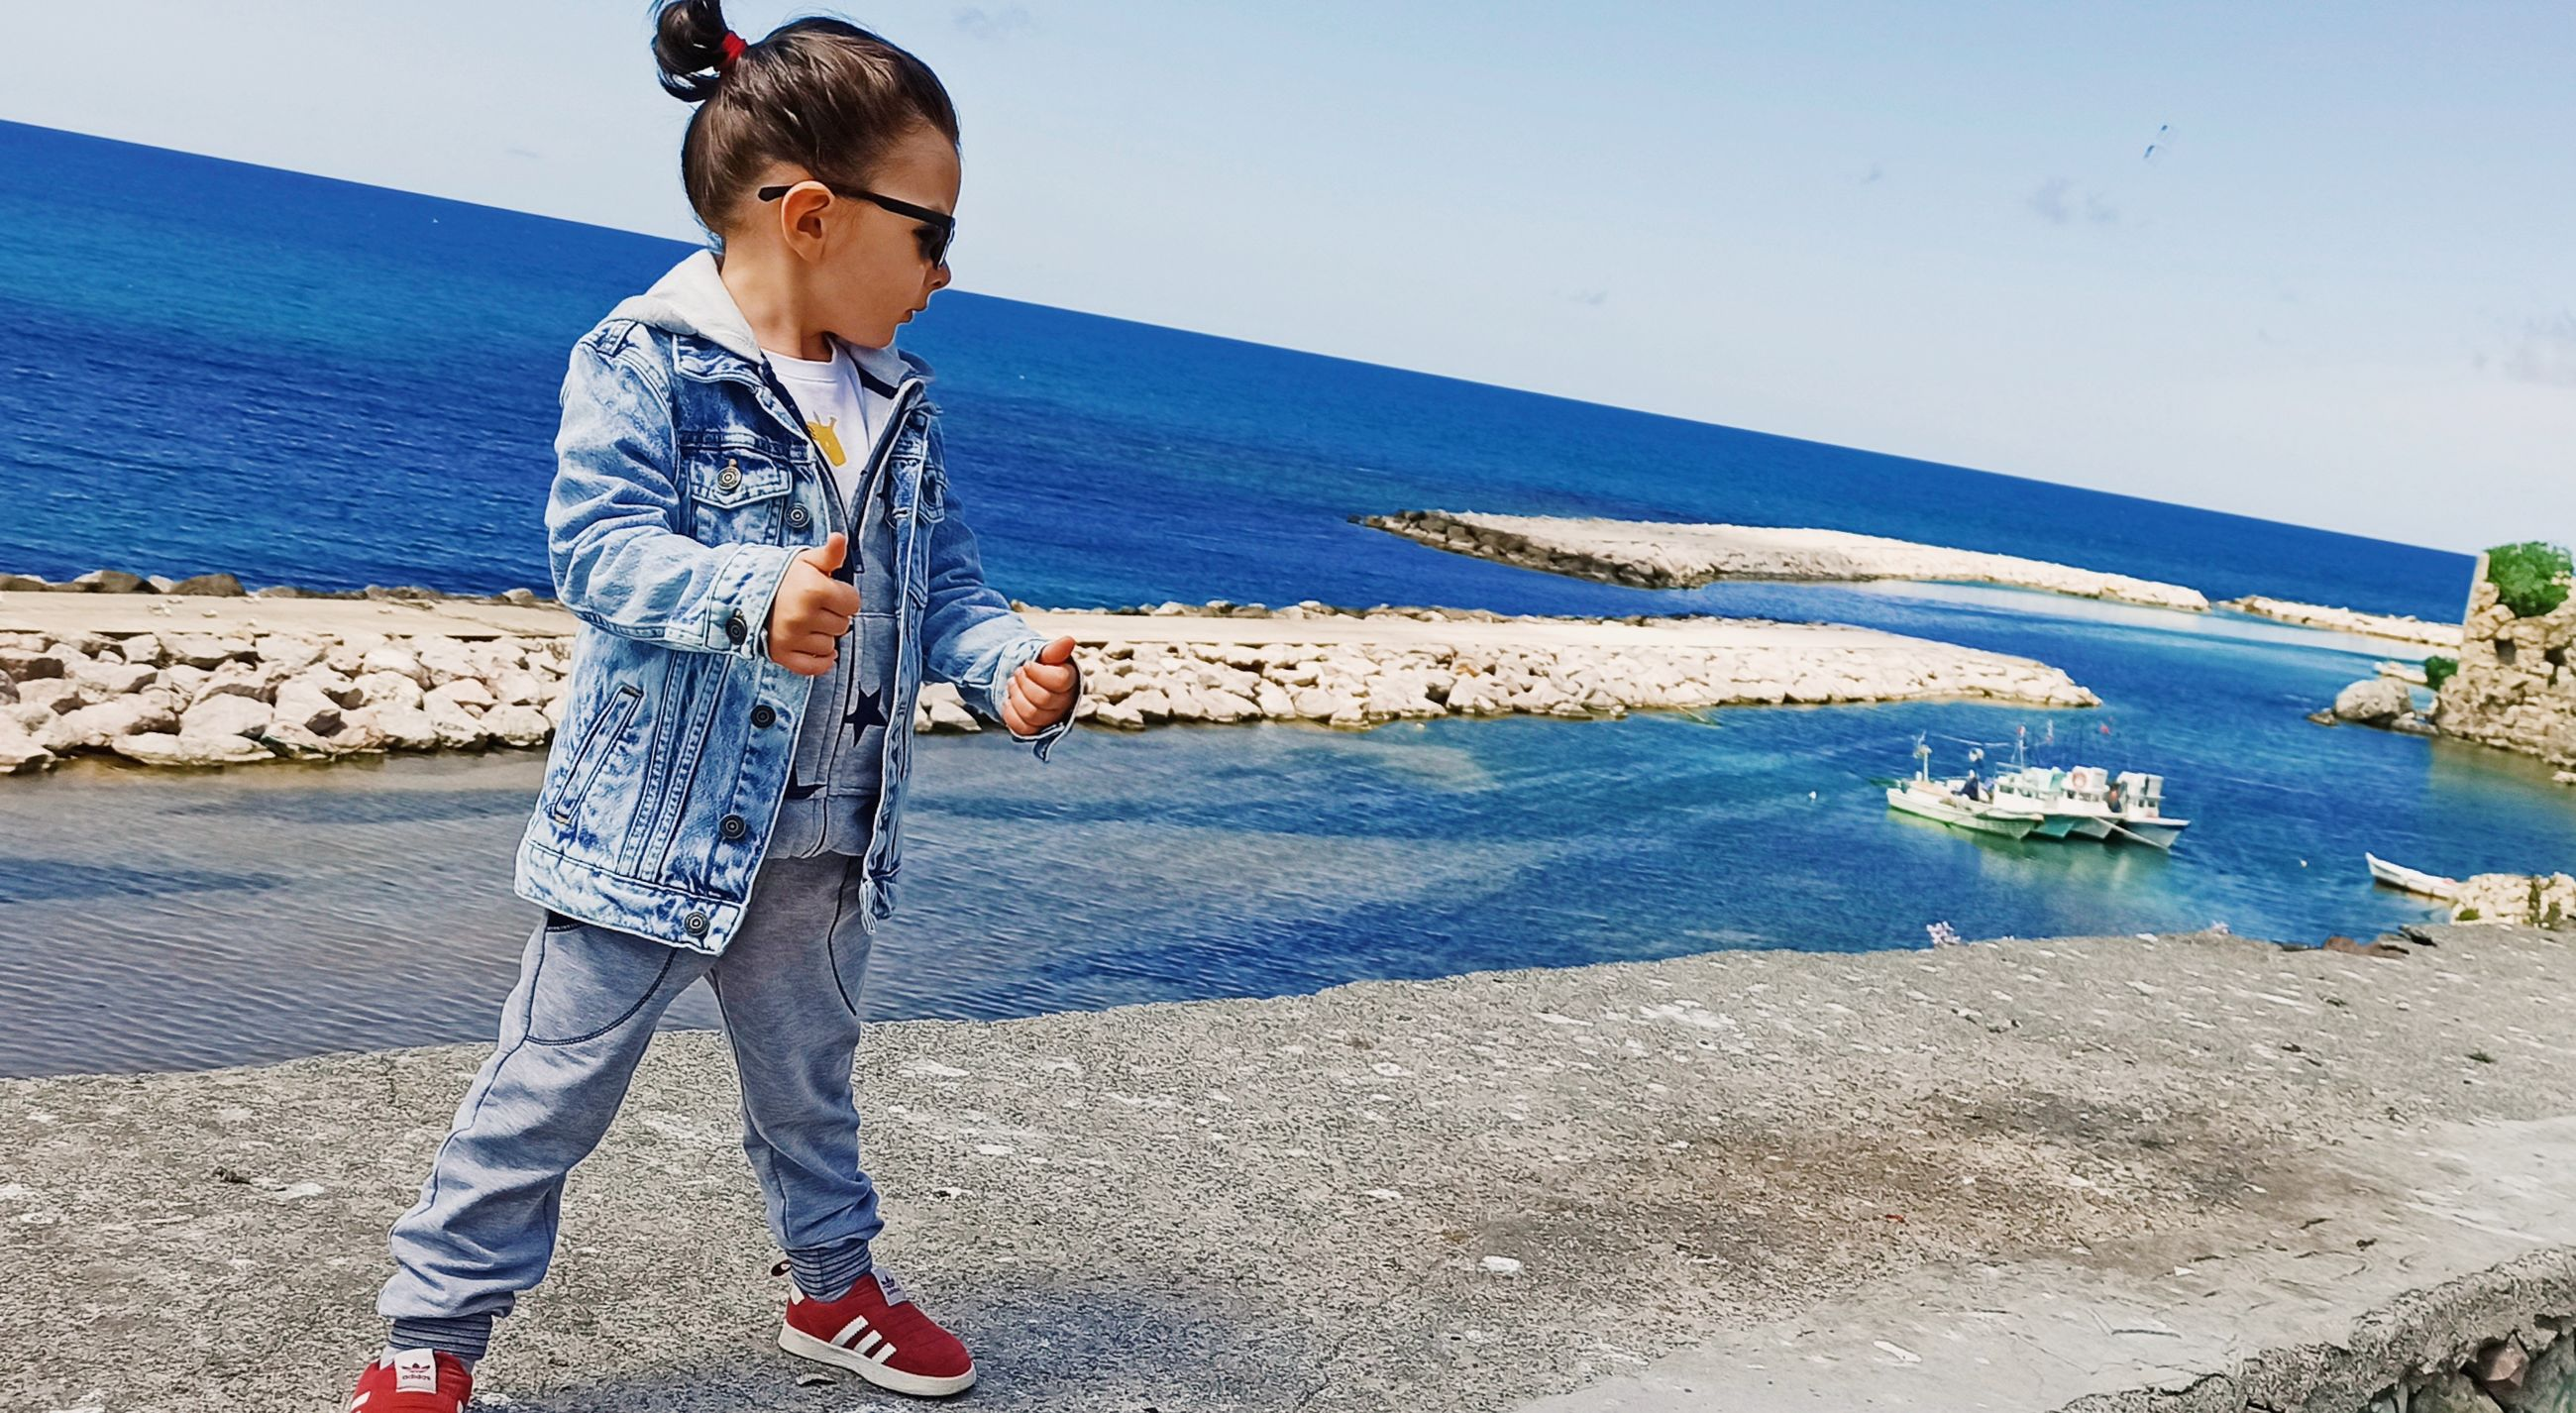 water, one person, sea, blue, beach, casual clothing, full length, standing, child, vacation, childhood, nature, day, leisure activity, sky, land, men, lifestyles, sunlight, glasses, outdoors, looking, beauty in nature, coast, sunny, horizon over water, scenics - nature, person, sunglasses